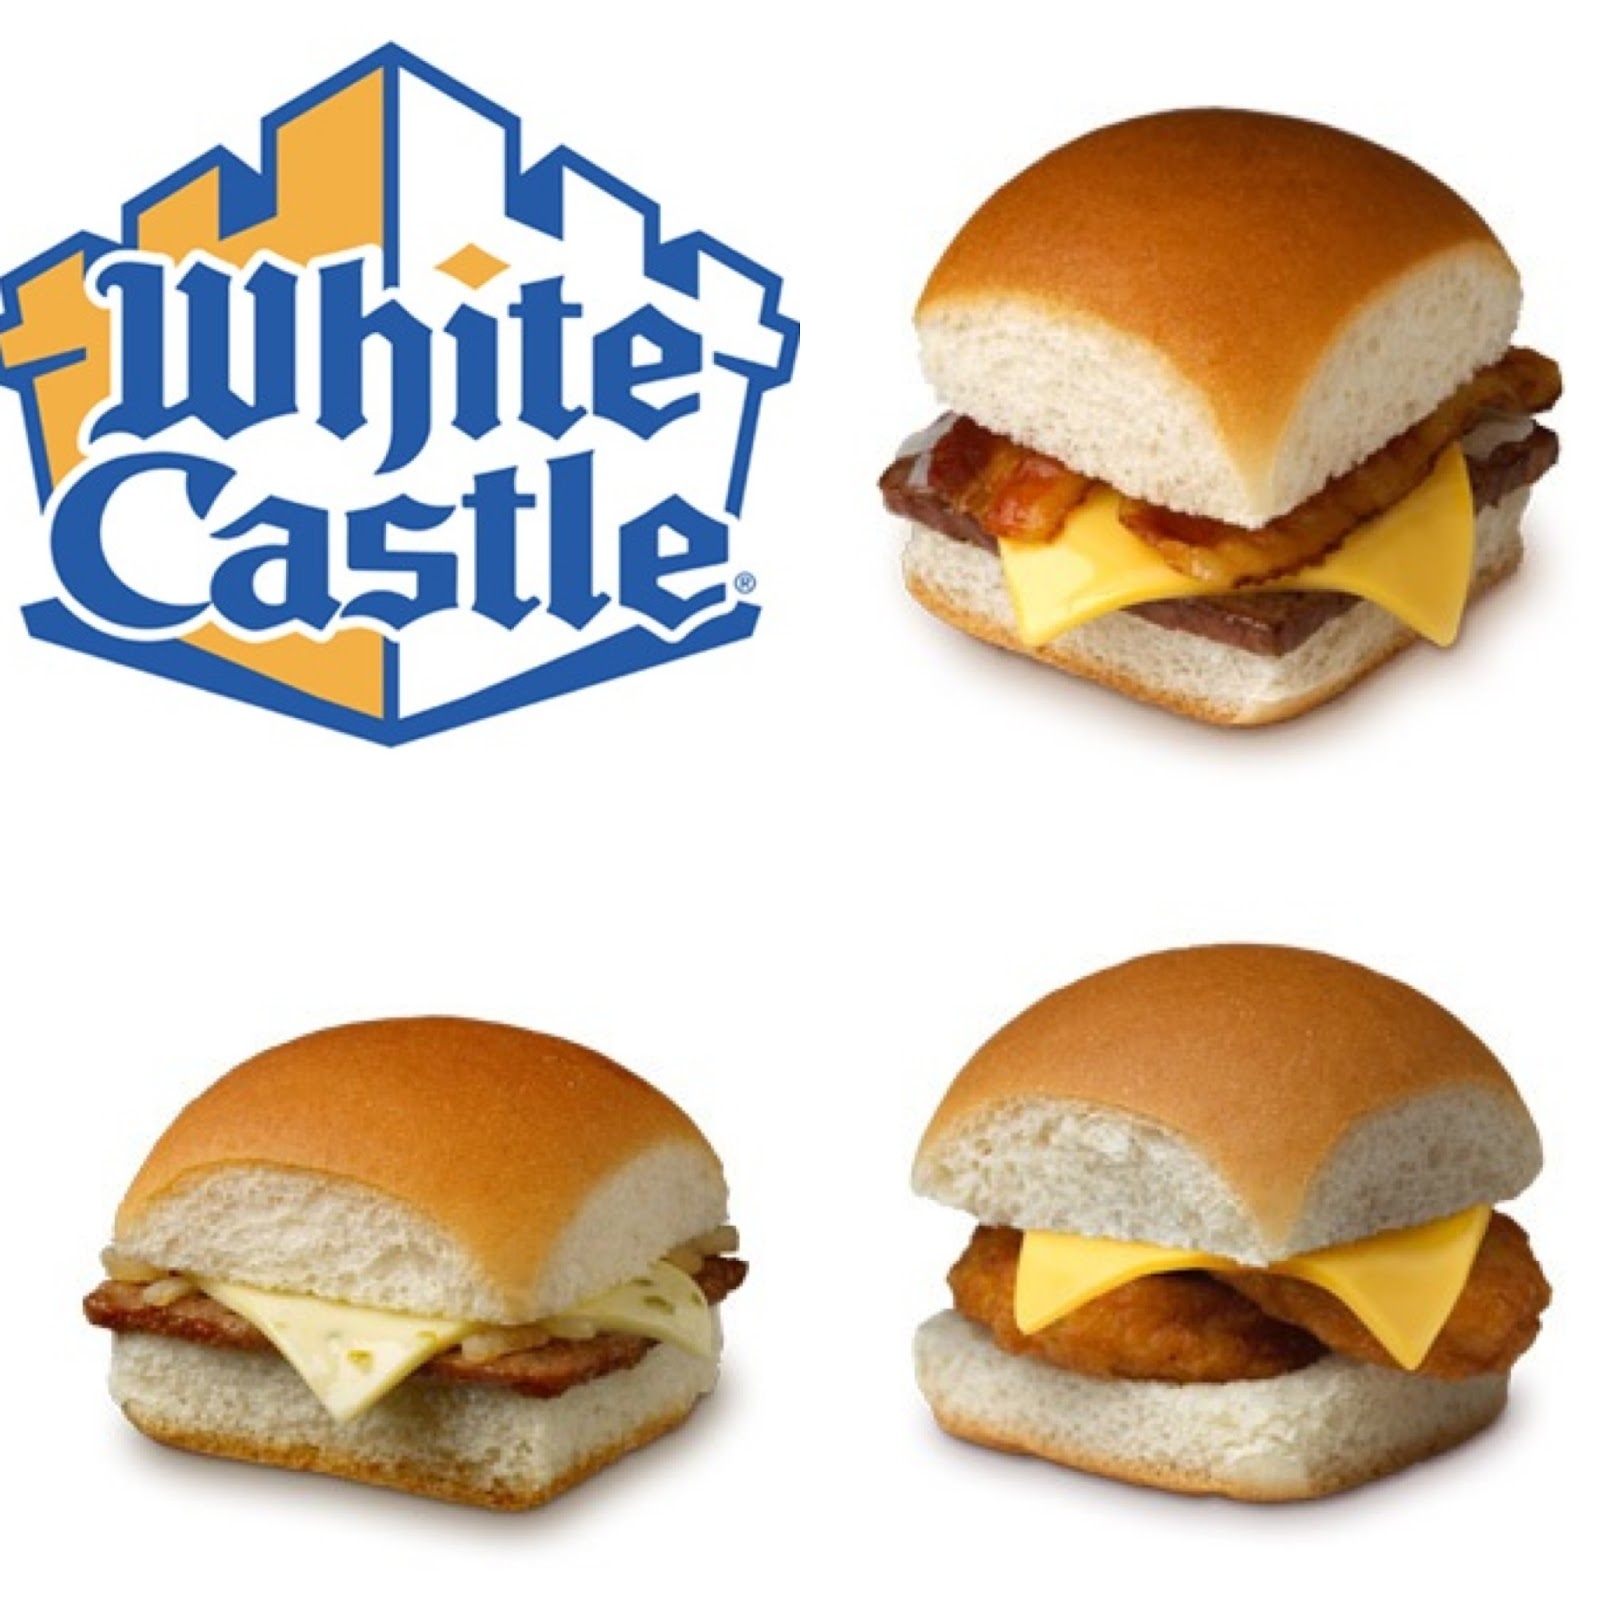 white castle White castle provides job opportunities across the country, hiring servers, cashiers, and managers for restaurants, manufacturing jobs in the food service industry, and for careers in their corporate headquarters.